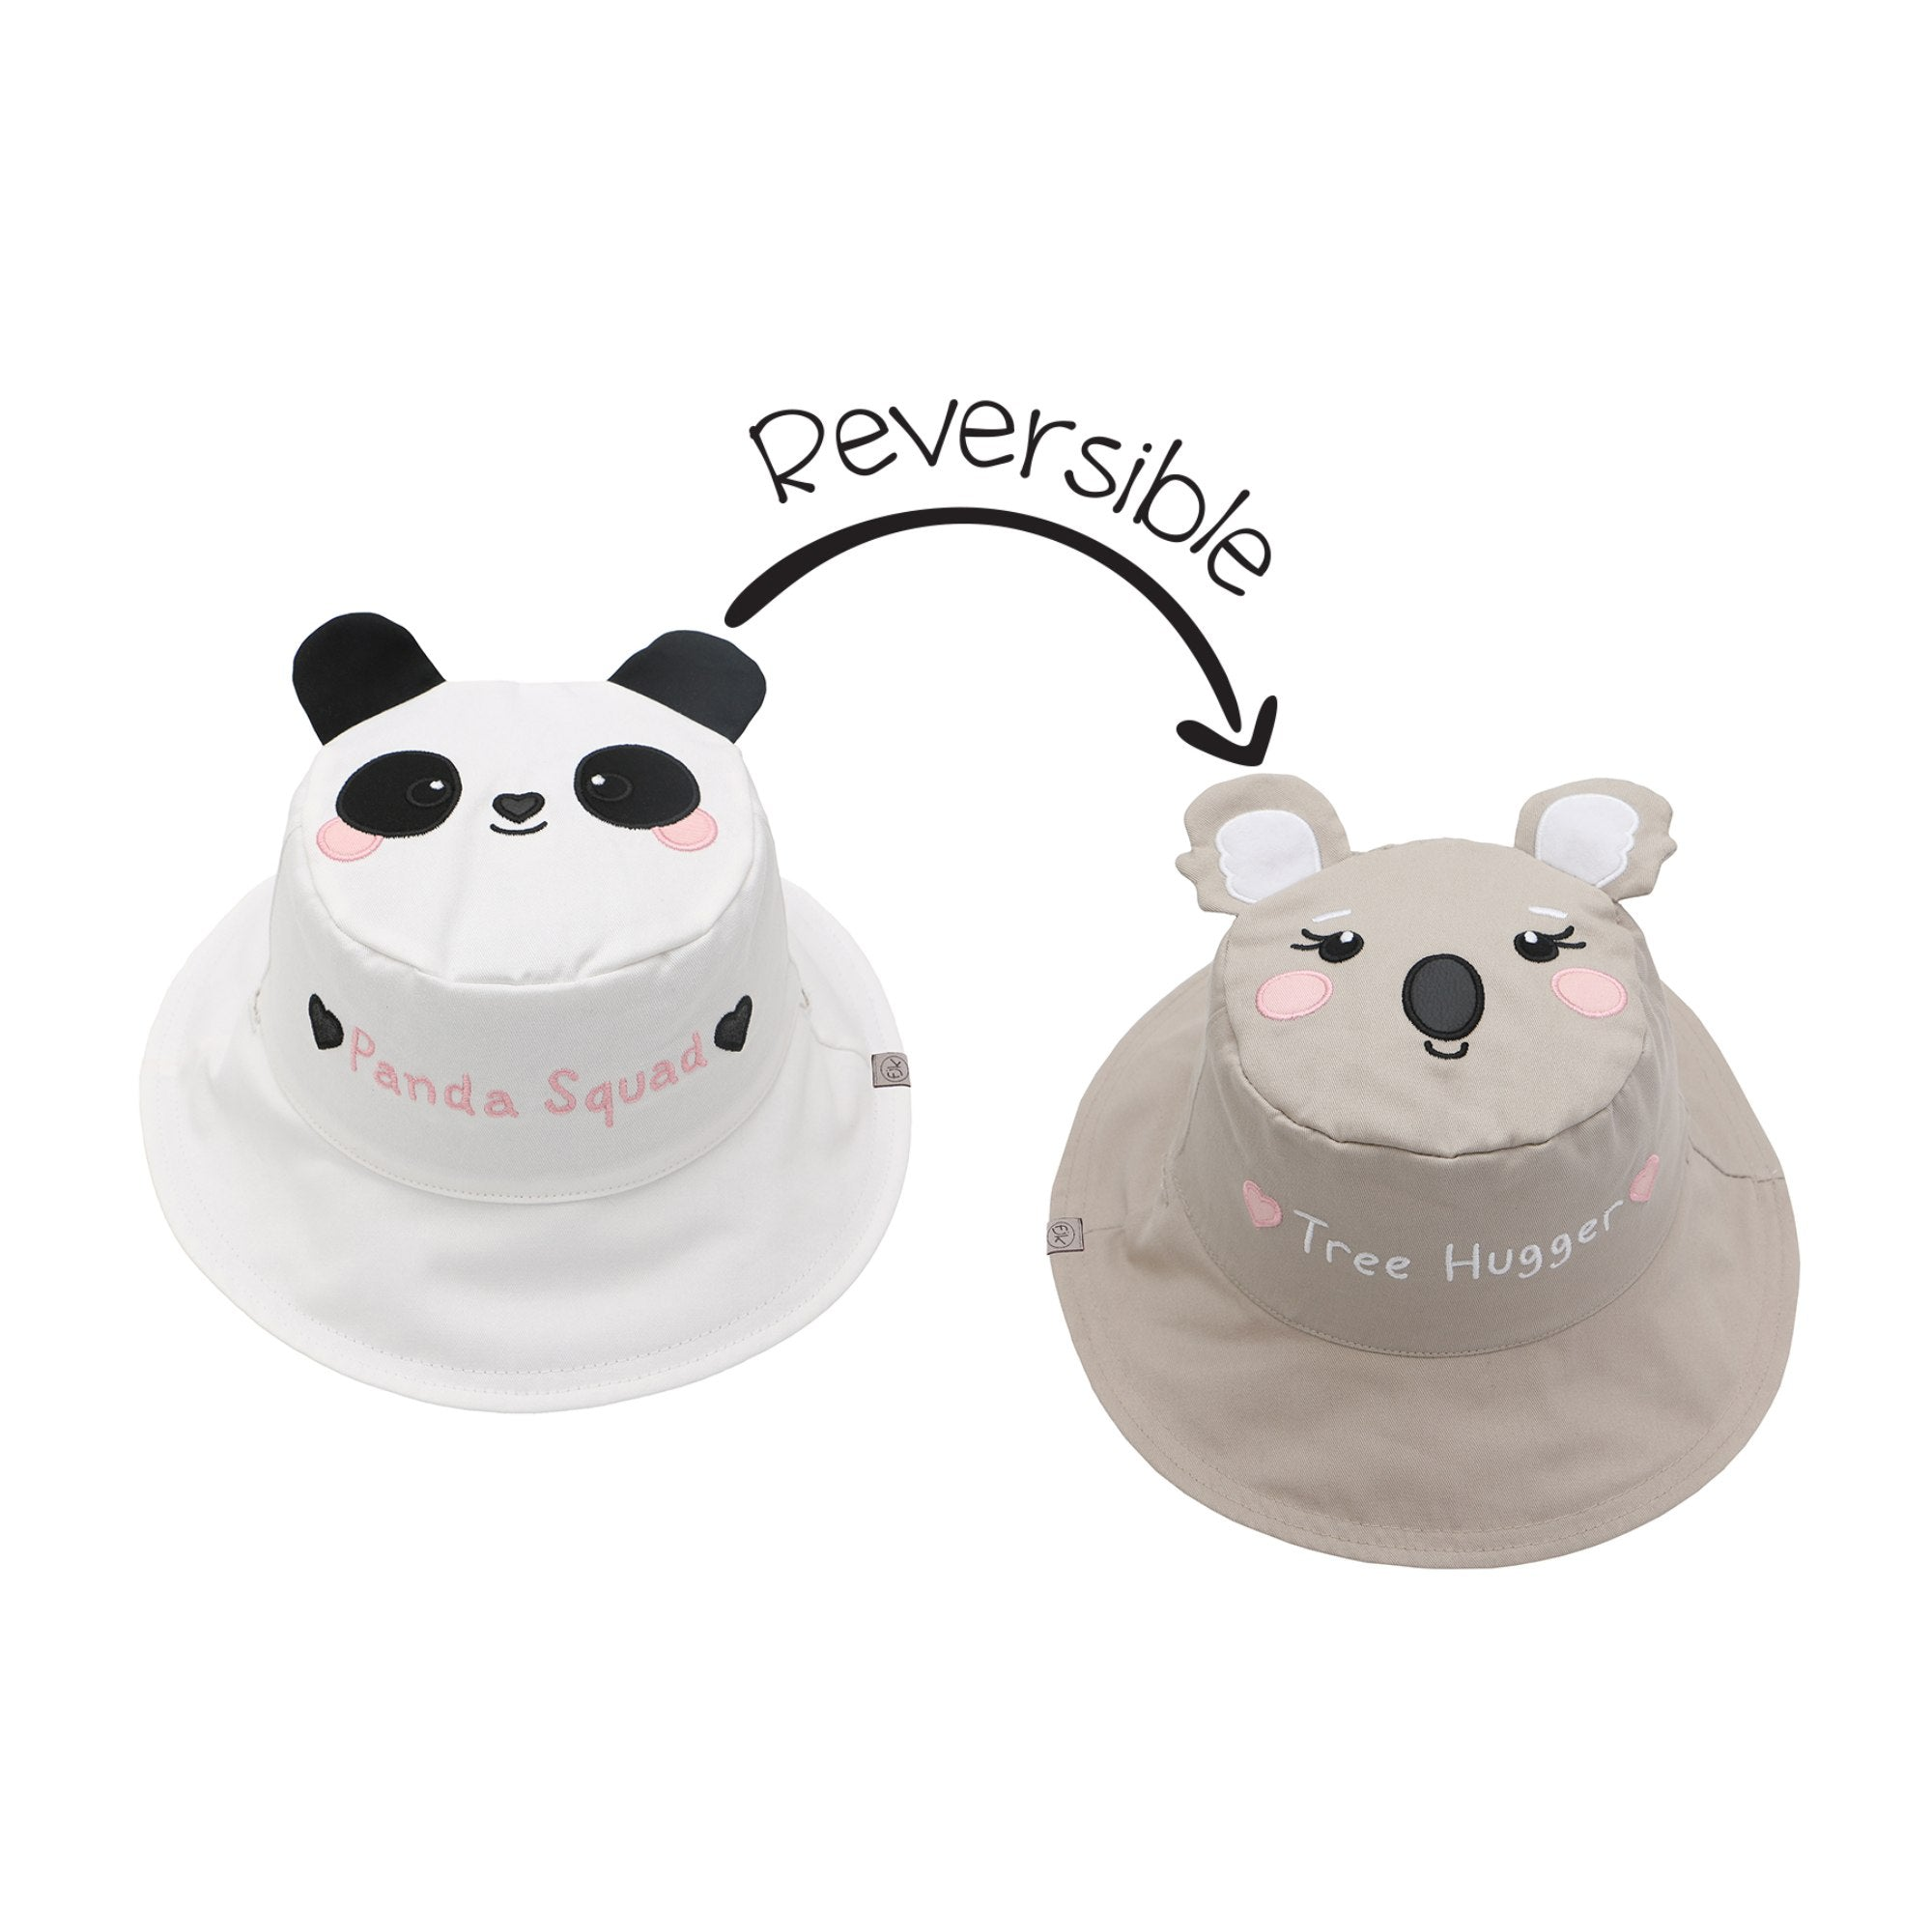 Panda and Koala Reversible Sun Hat